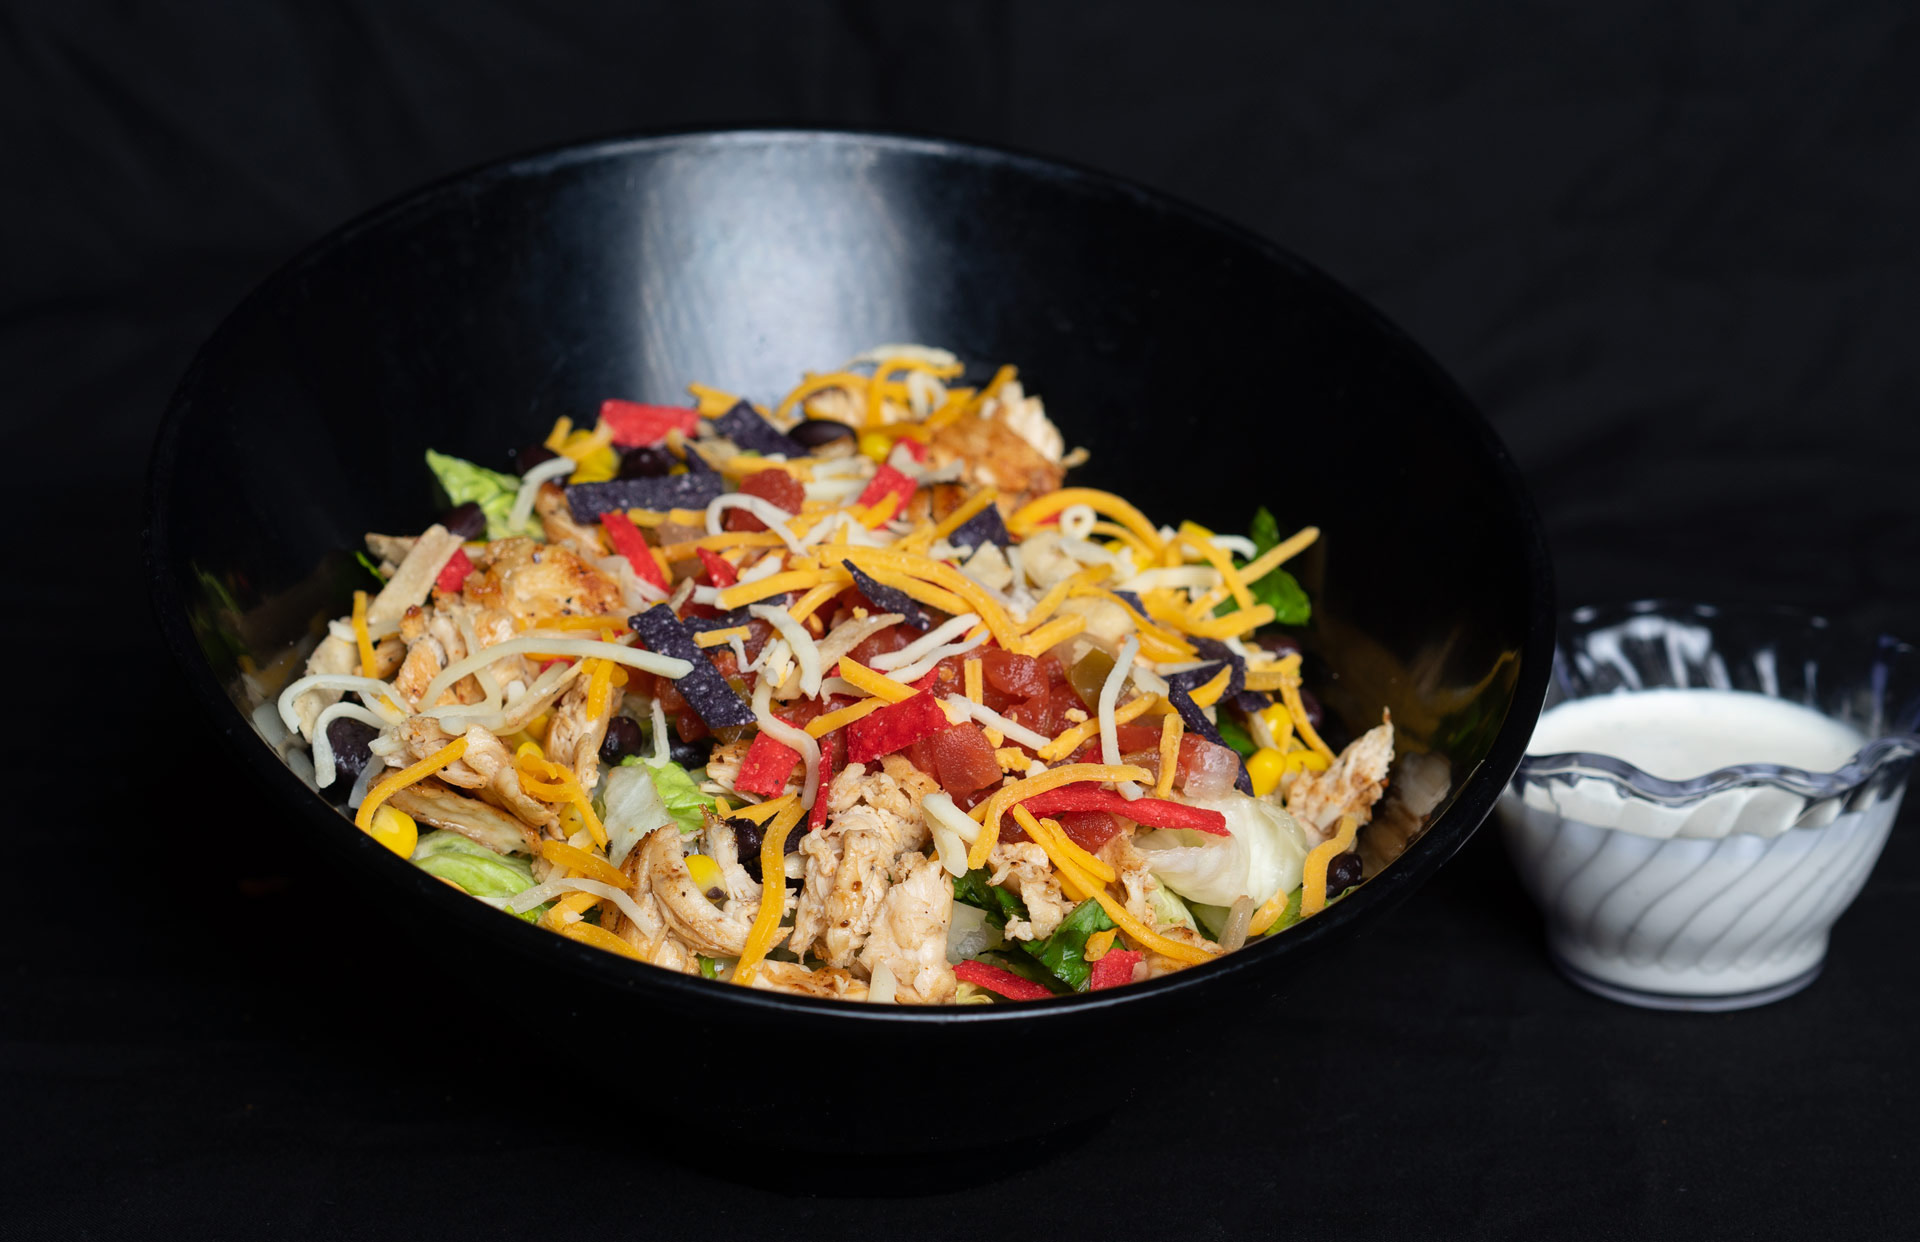 Southwest Chicken Salad Fresh mixed greens topped with fajita grilled chicken breast, black bean corn relish, Pico de Gallo, cheddar jack cheese, and tortilla strips. Served with a side of jalapeno ranch dressing. 12.00